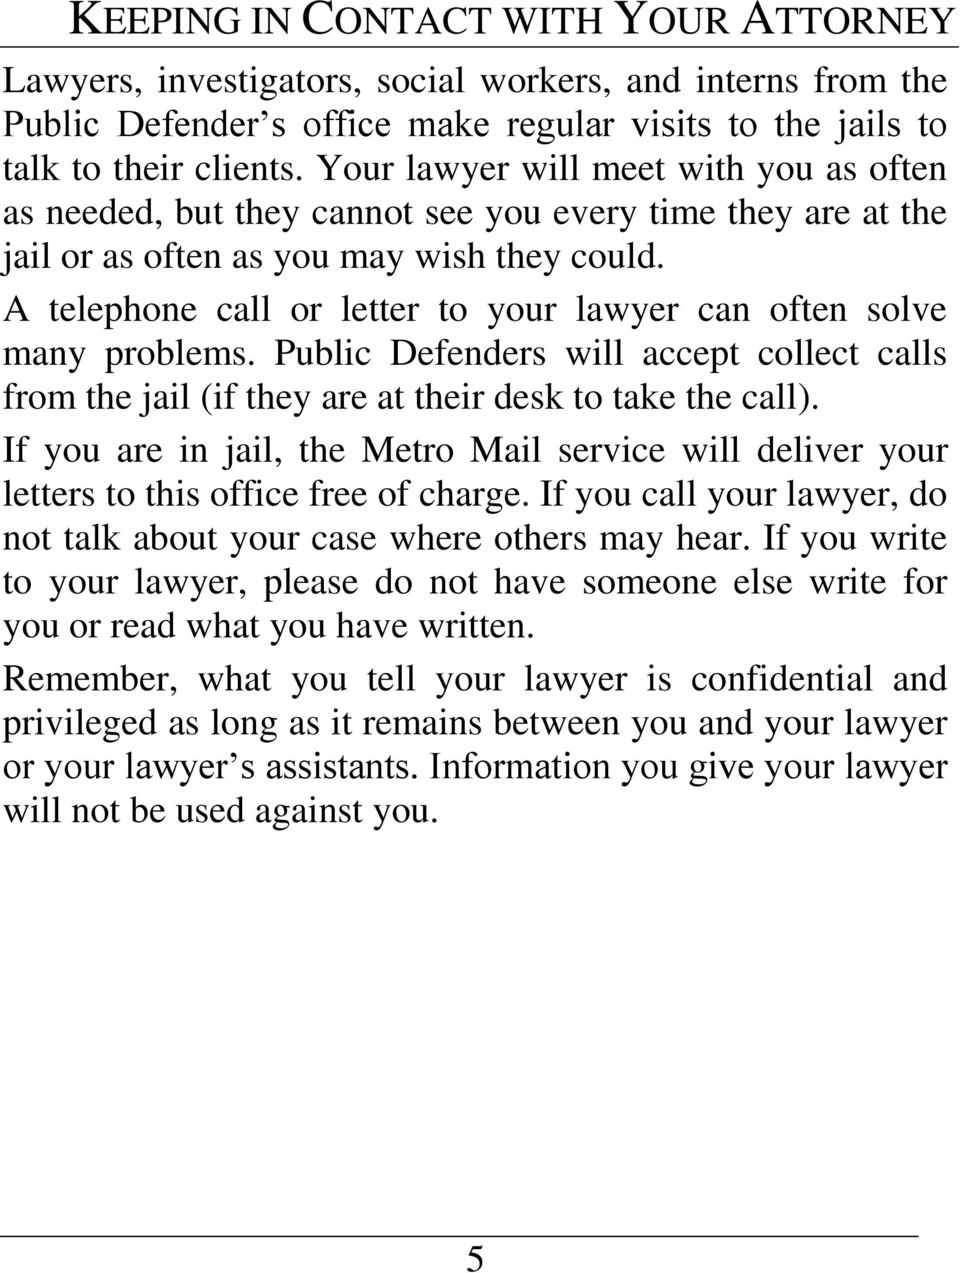 A telephone call or letter to your lawyer can often solve many problems. Public Defenders will accept collect calls from the jail (if they are at their desk to take the call).